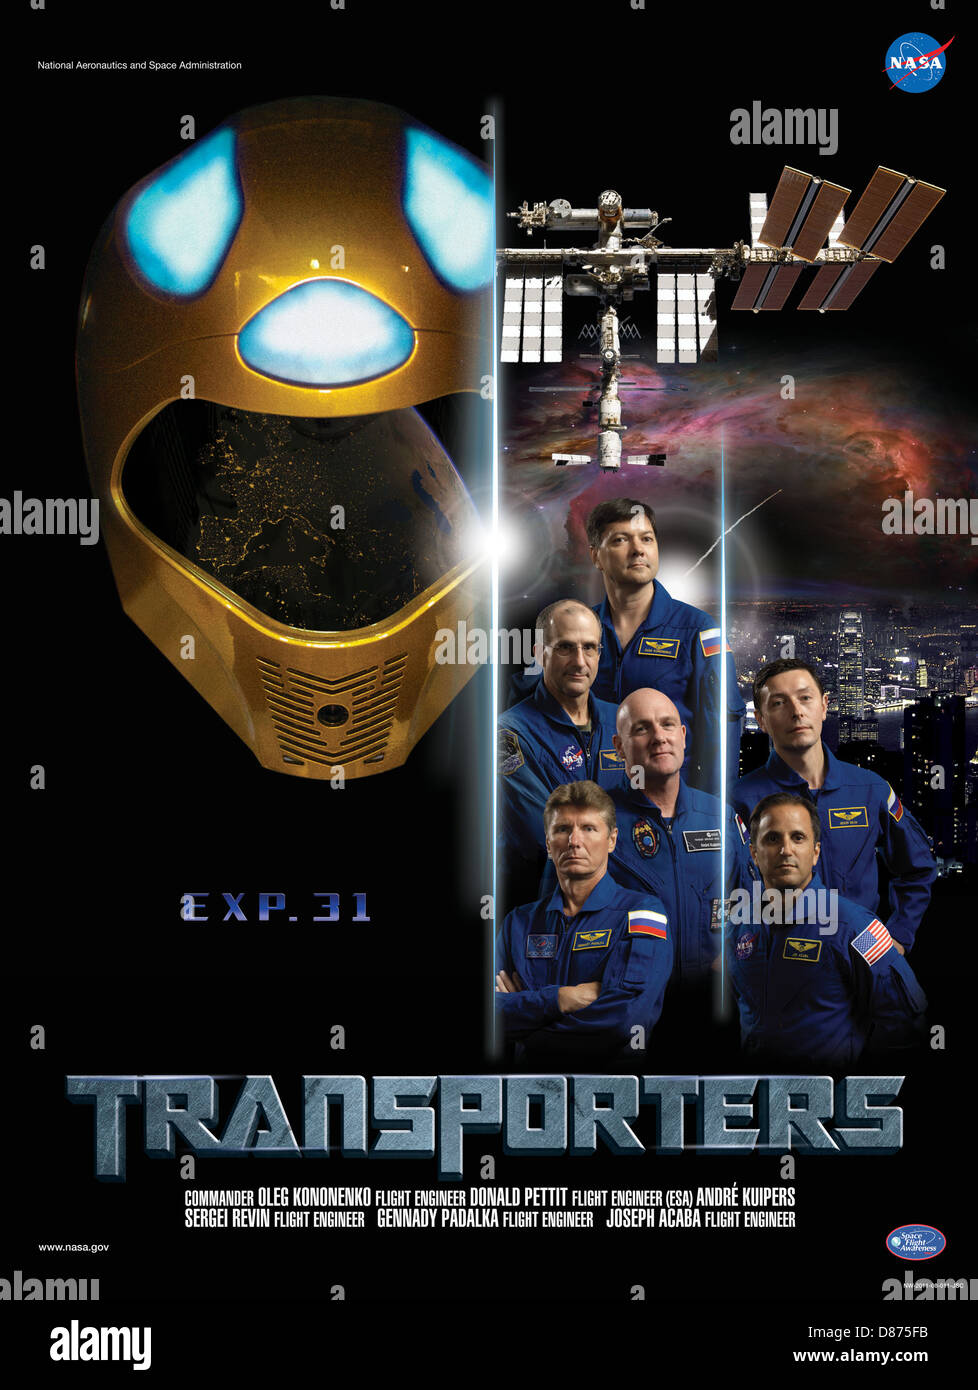 Expedition 31 TRANSPORTERS crew poster.jpg - Stock Image